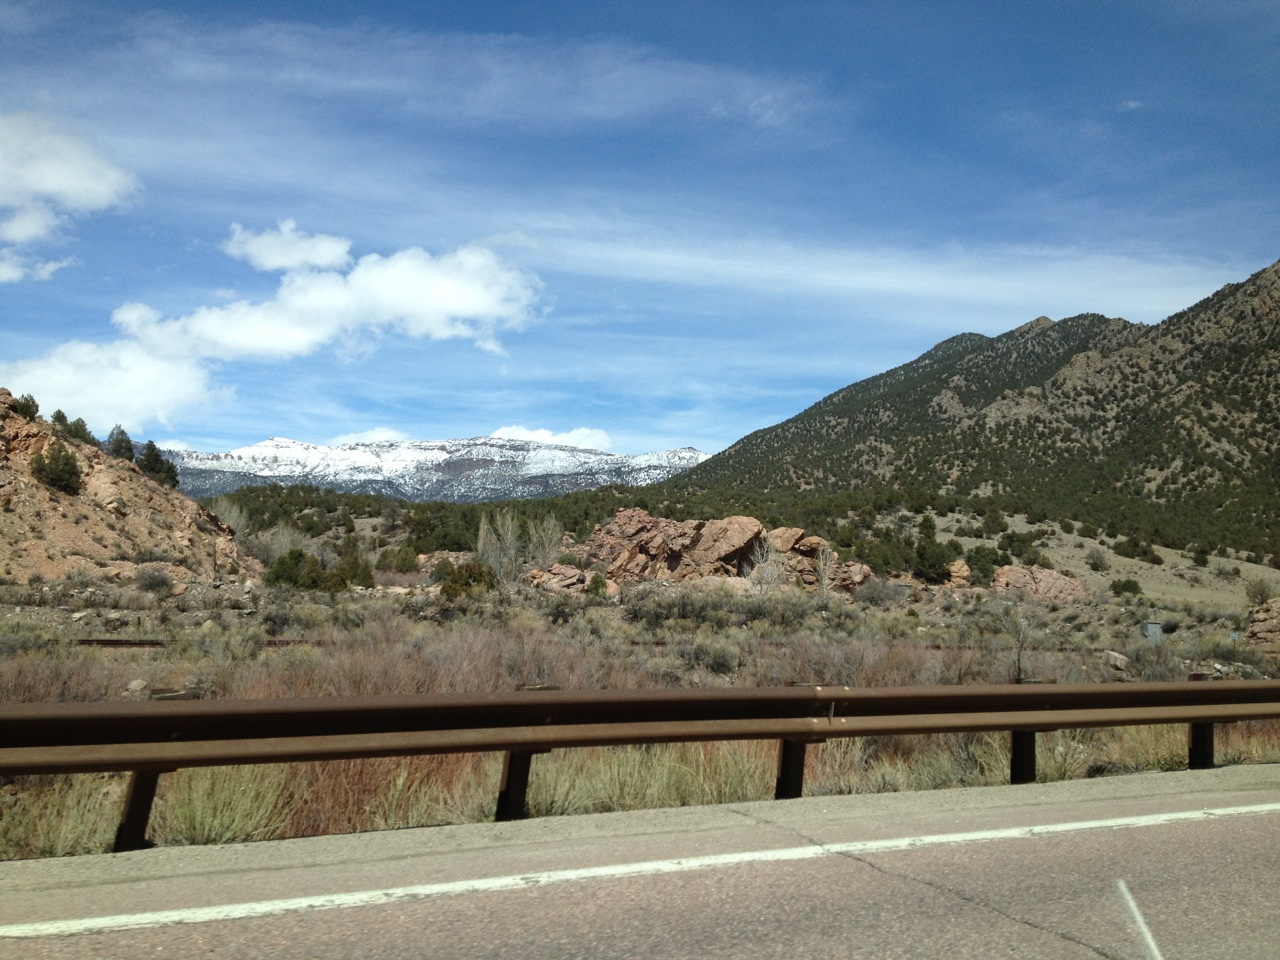 Spring snow on the high mesas above the river canyon.